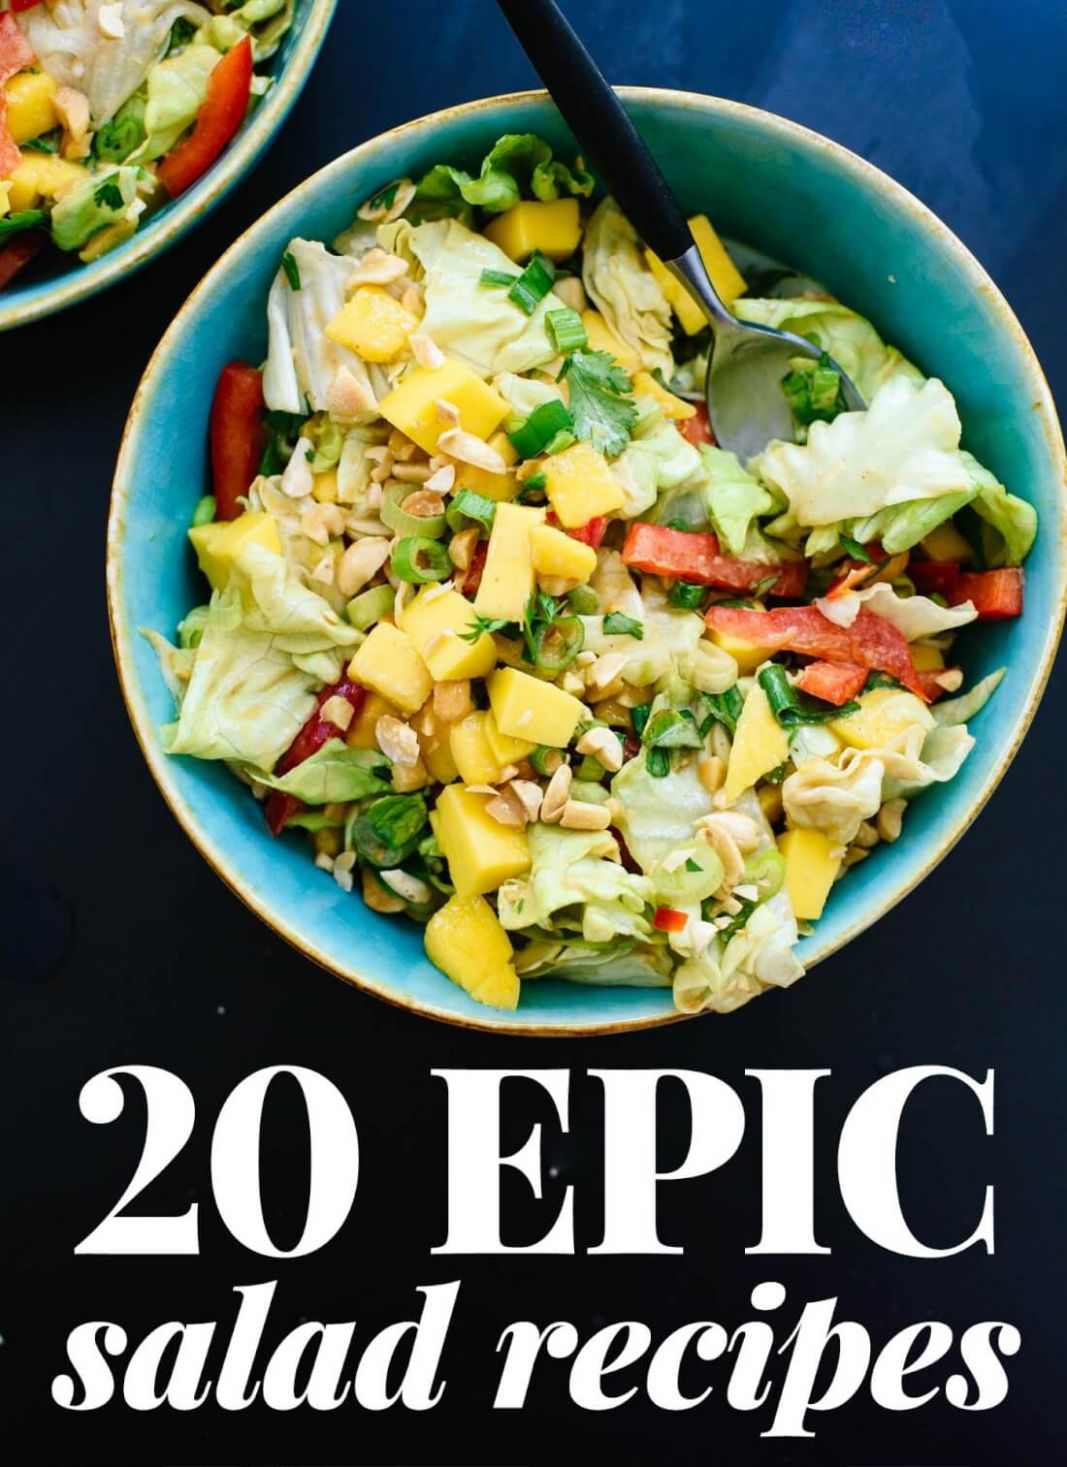 10 Epic Salad Recipes - Cookie and Kate